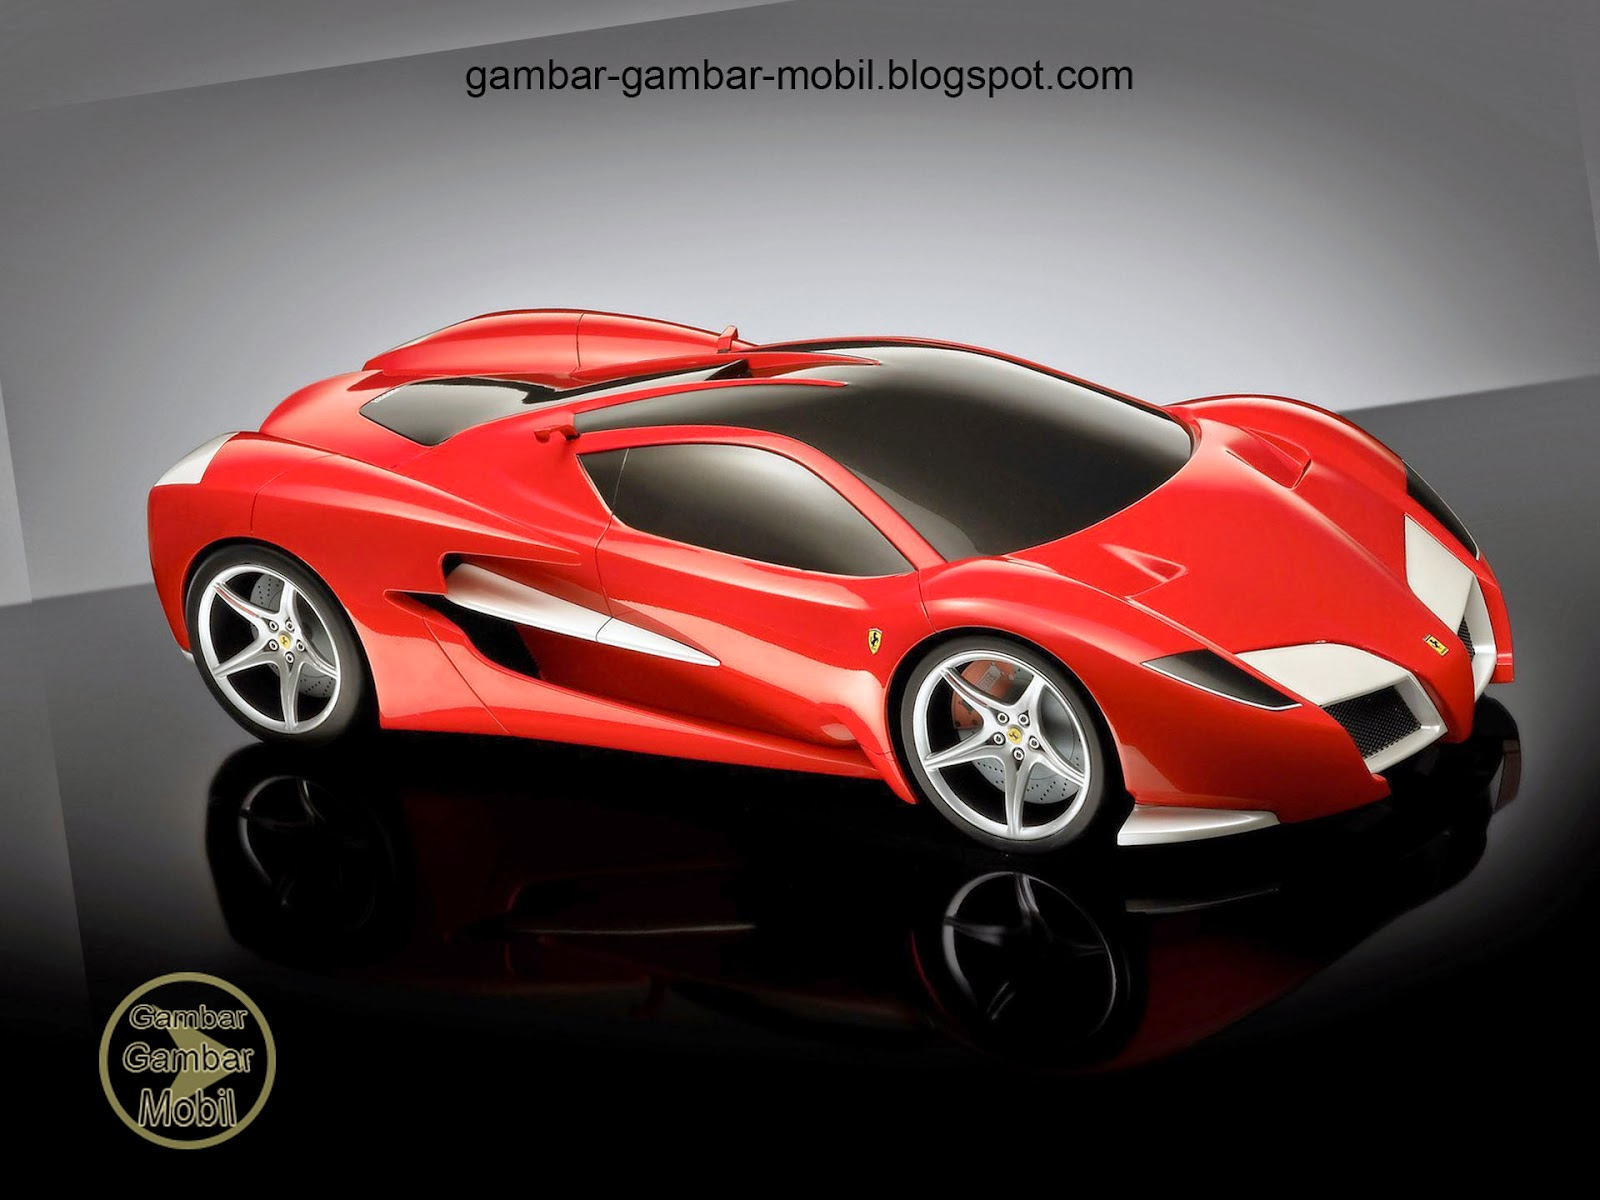 gambar mobil ferrari gambar gambar mobil. Black Bedroom Furniture Sets. Home Design Ideas